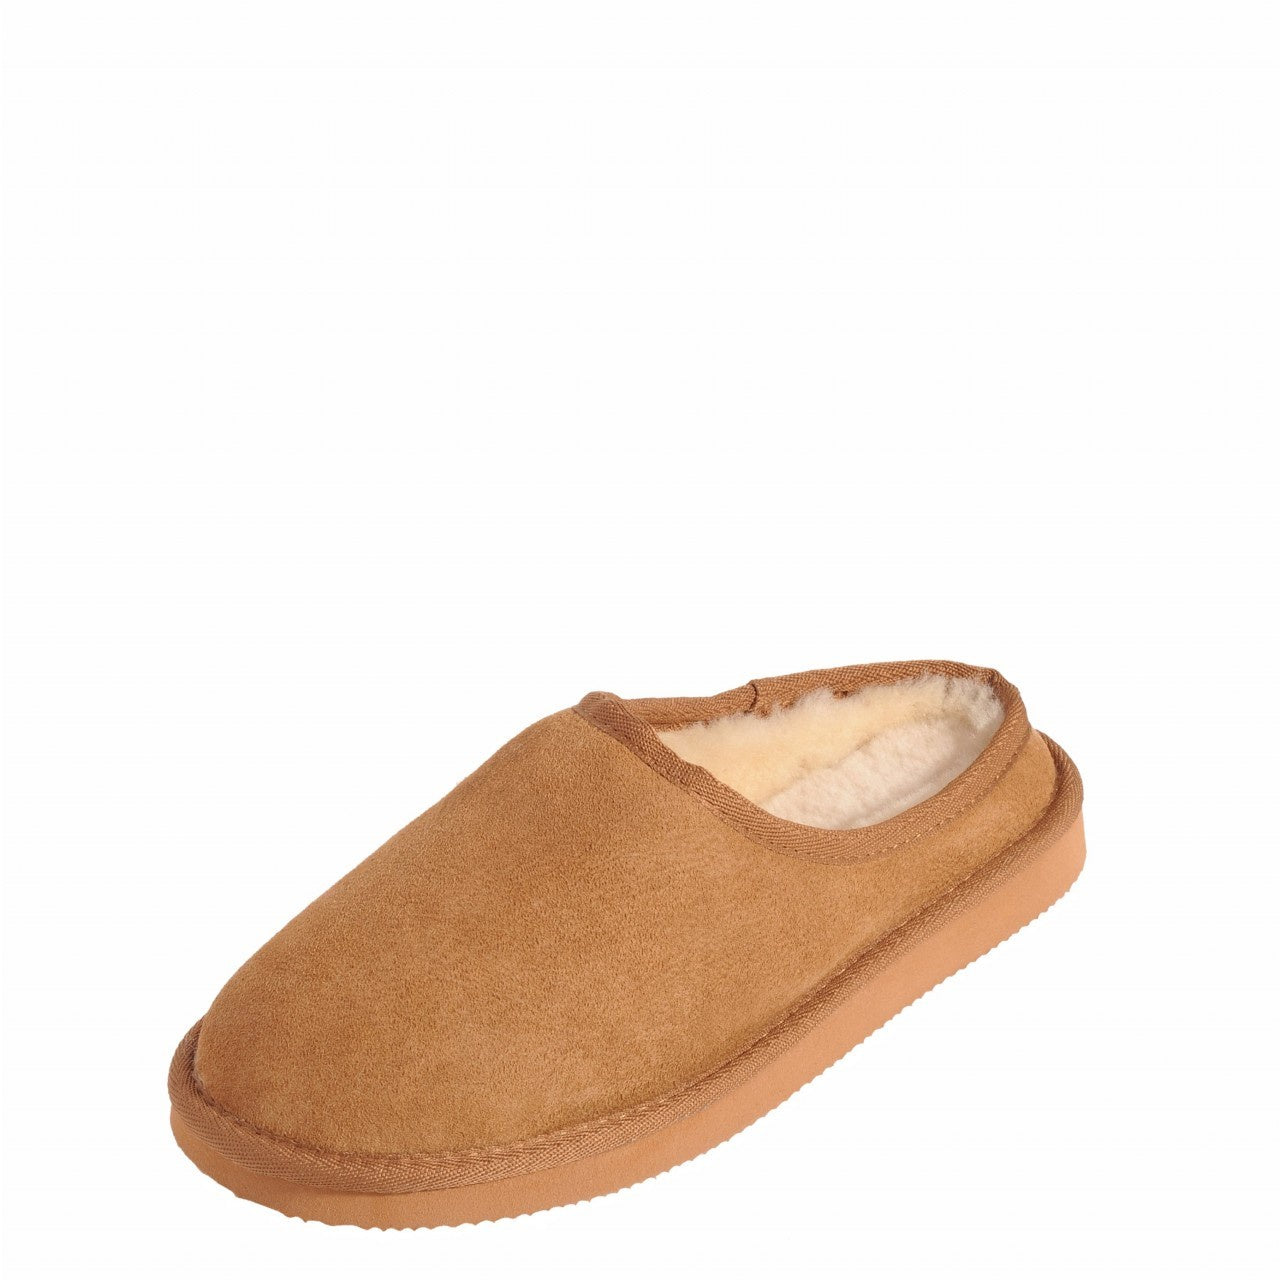 Benmore Slipper